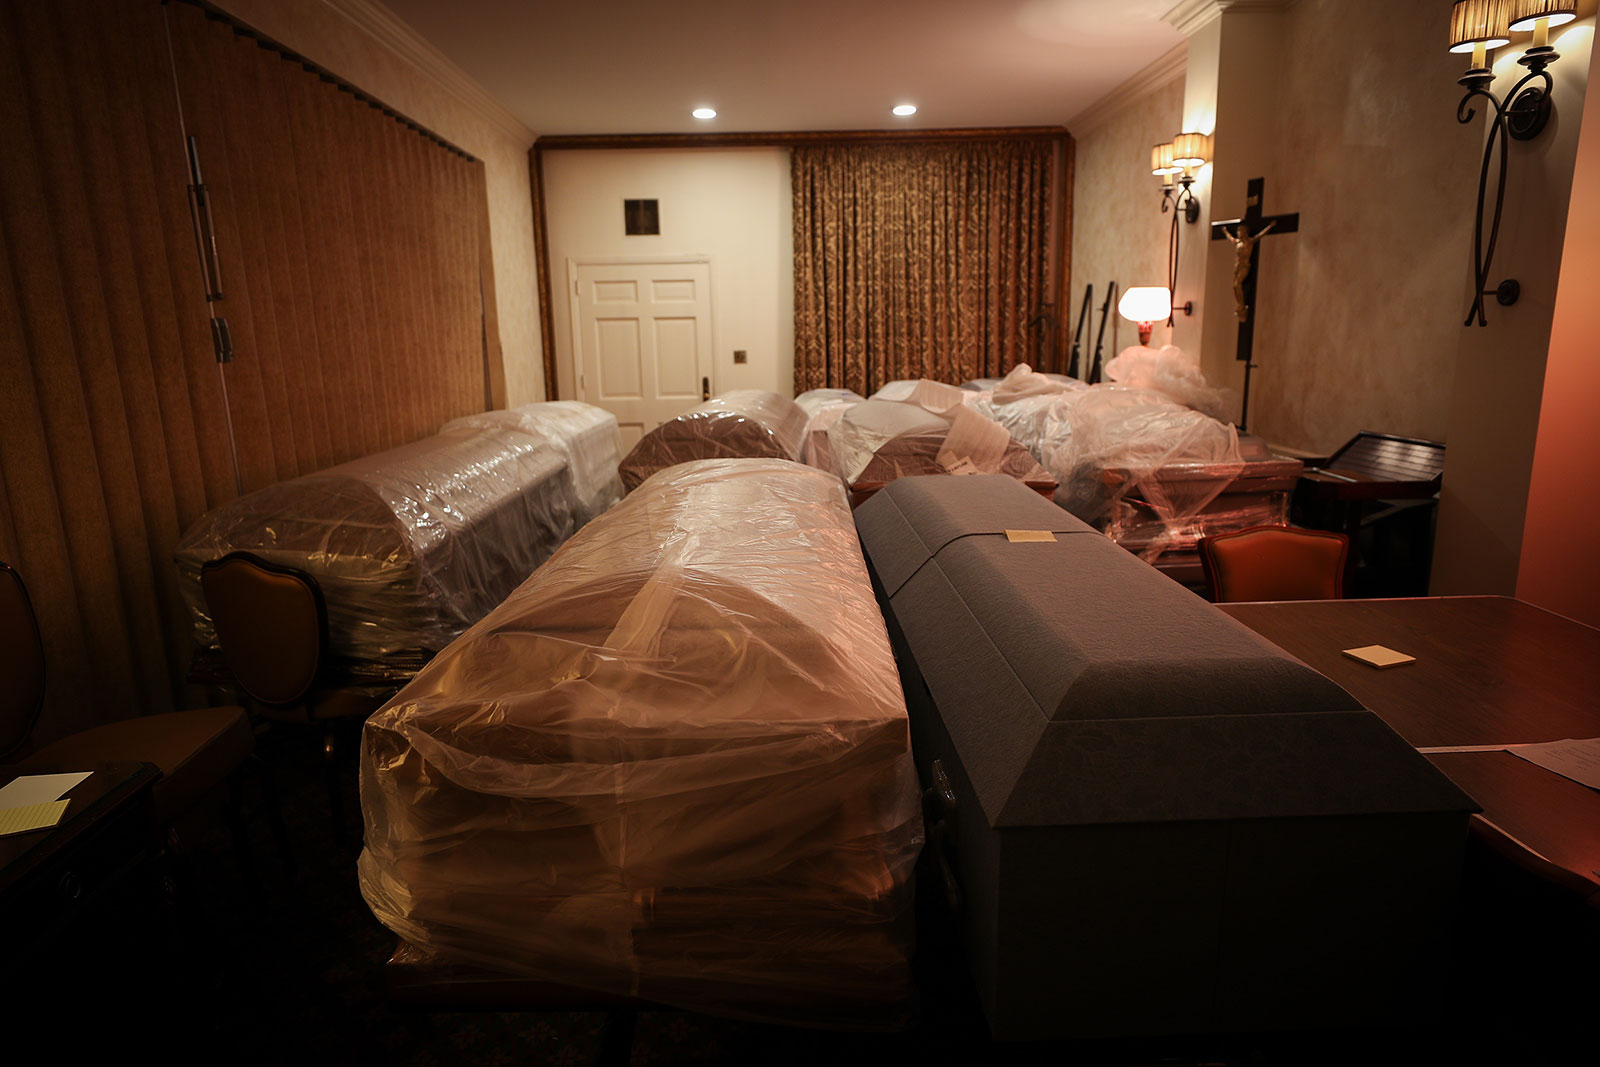 Caskets holding coronavirus victims are seen at the Gerard J. Neufeld funeral home in Queens, New York, on April 29.